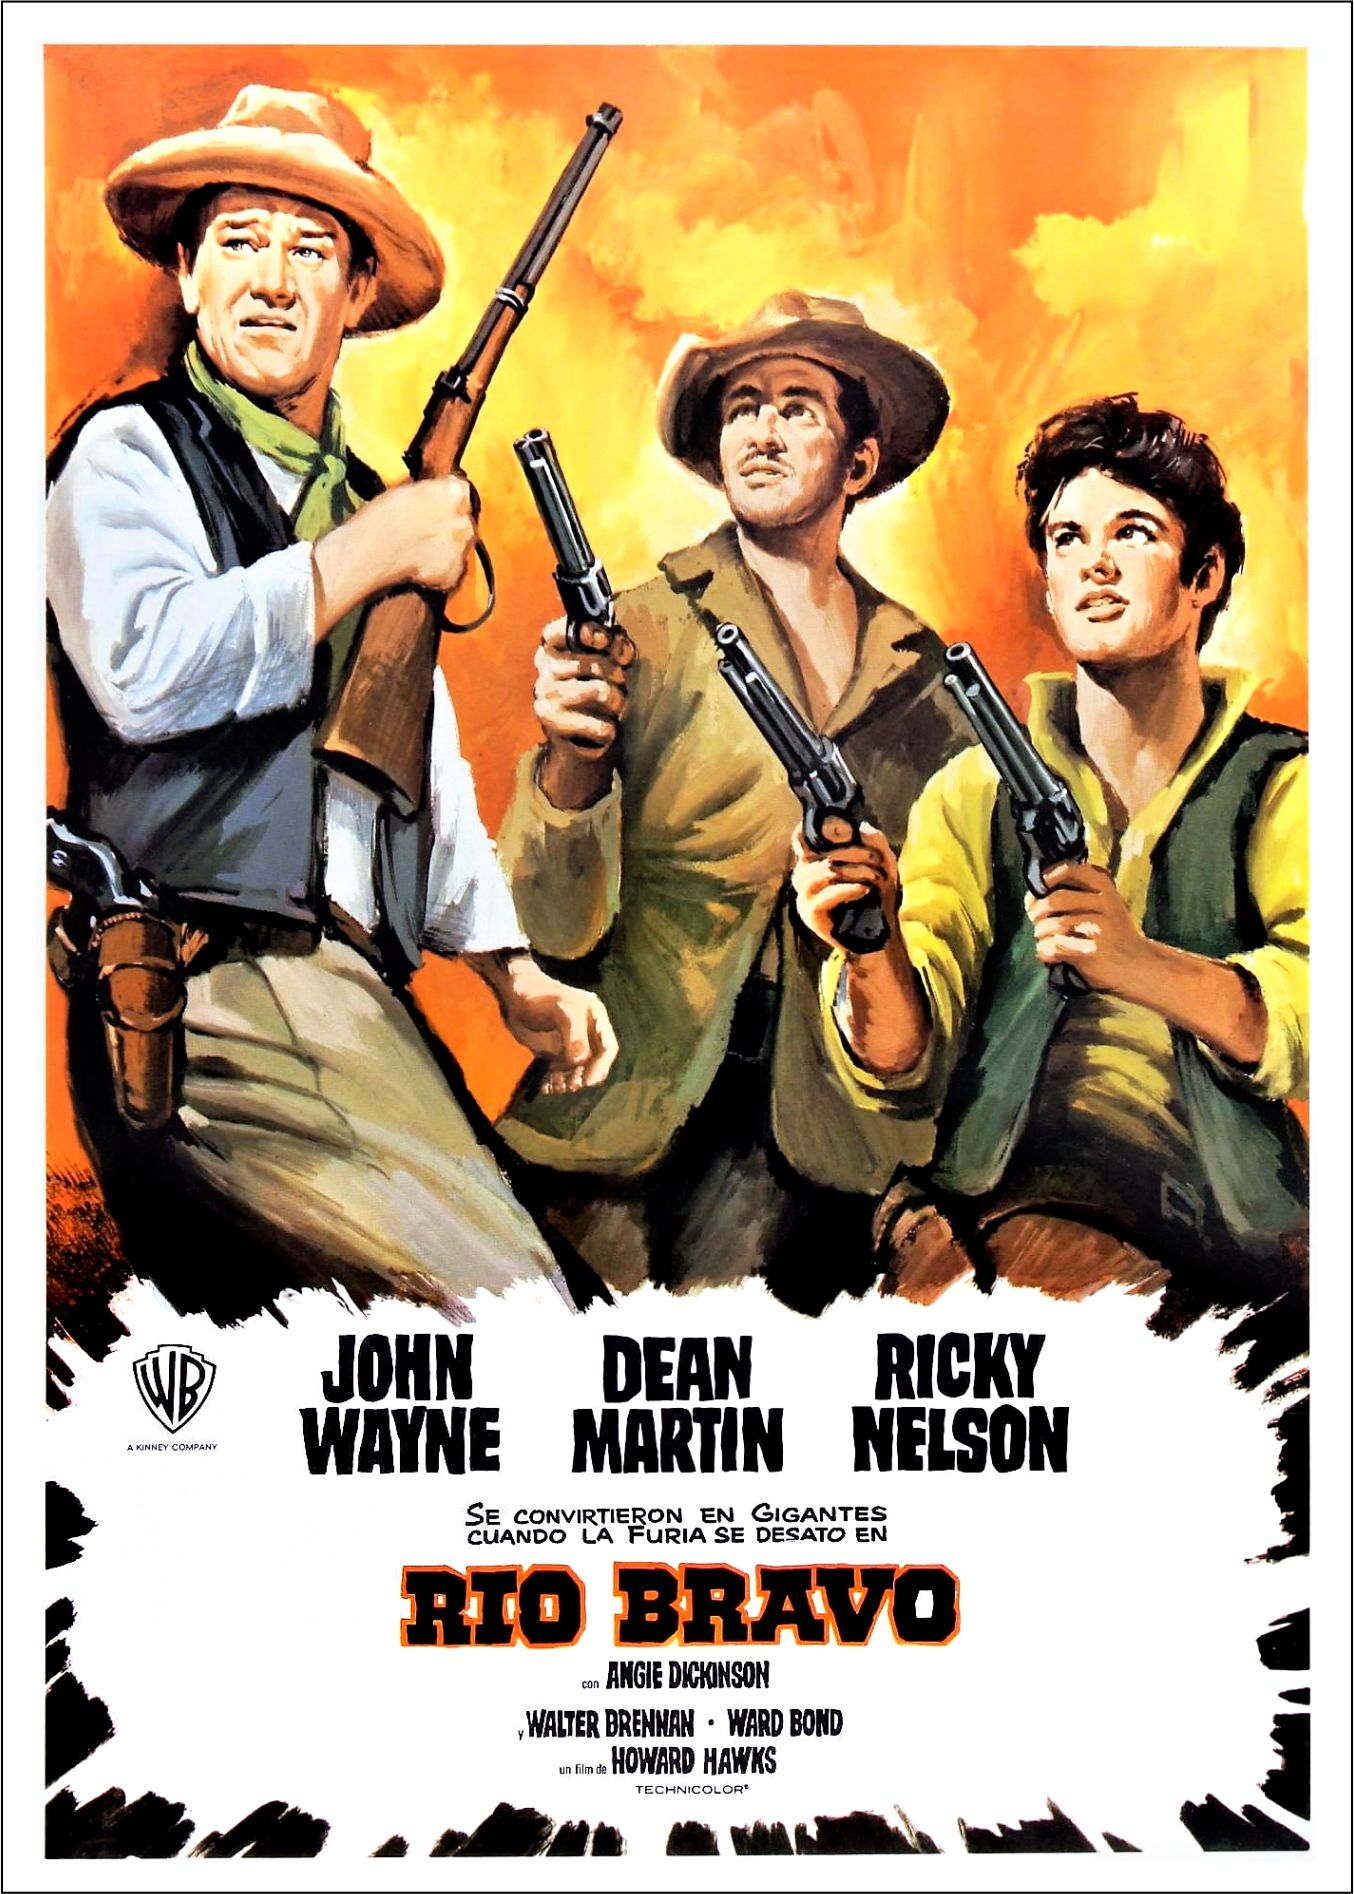 rio bravo 24032011 rio bravo my rifle, my pony, and me/cindy - dean martin, ricky nelson and walter brennan the sun is sinking in the west the cattle go down to the stream the.